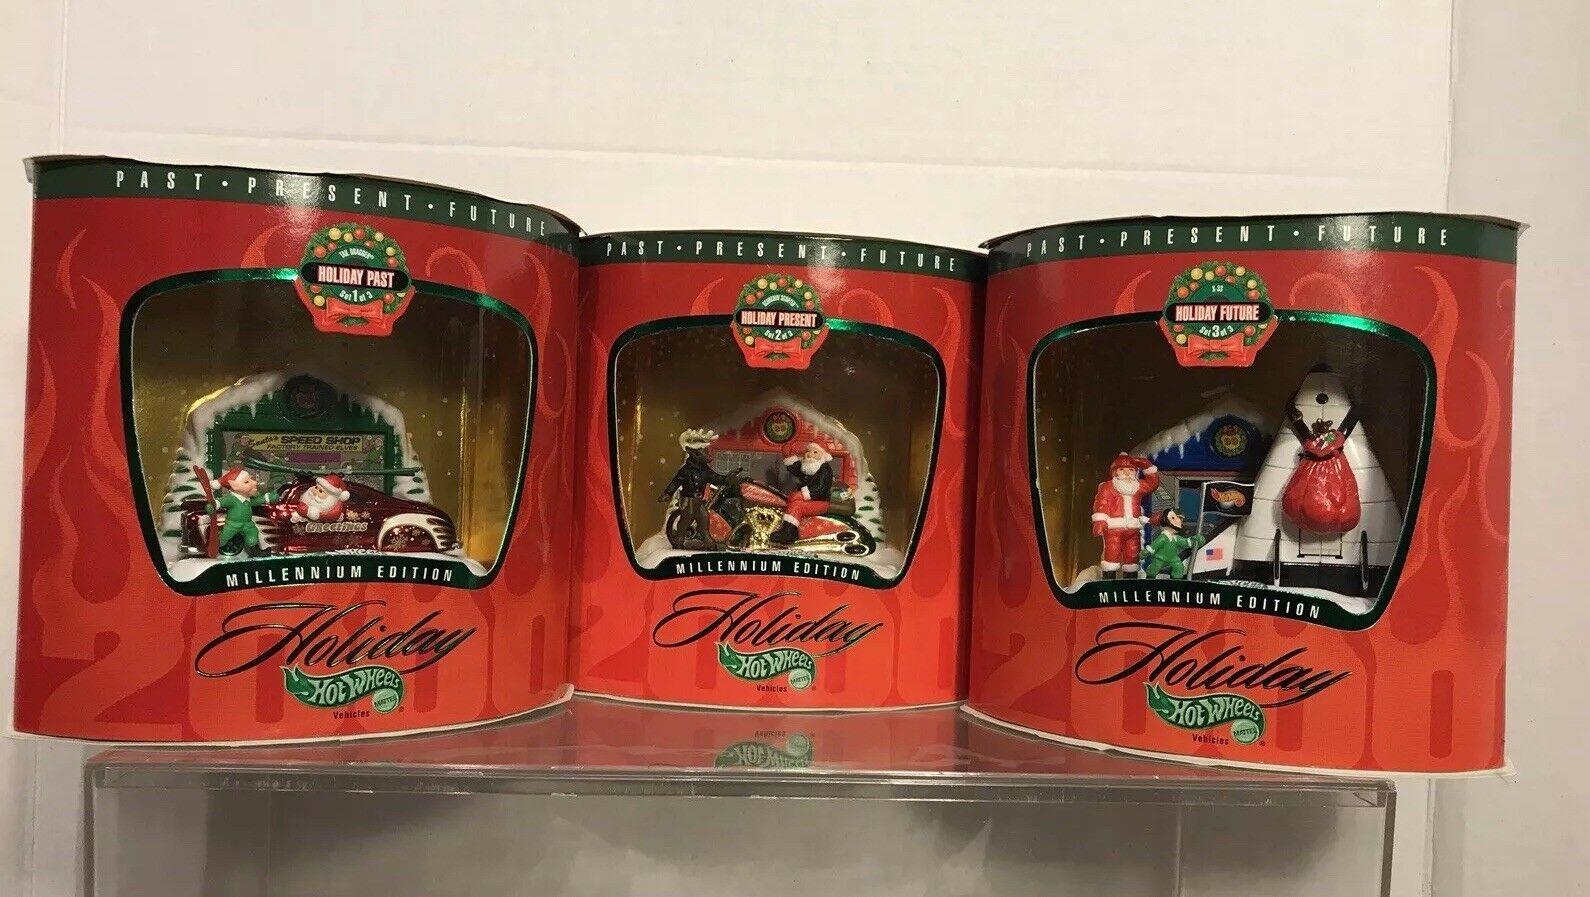 Hot Wheels Holliday Millennium Edition set of 3 1 64S NIB